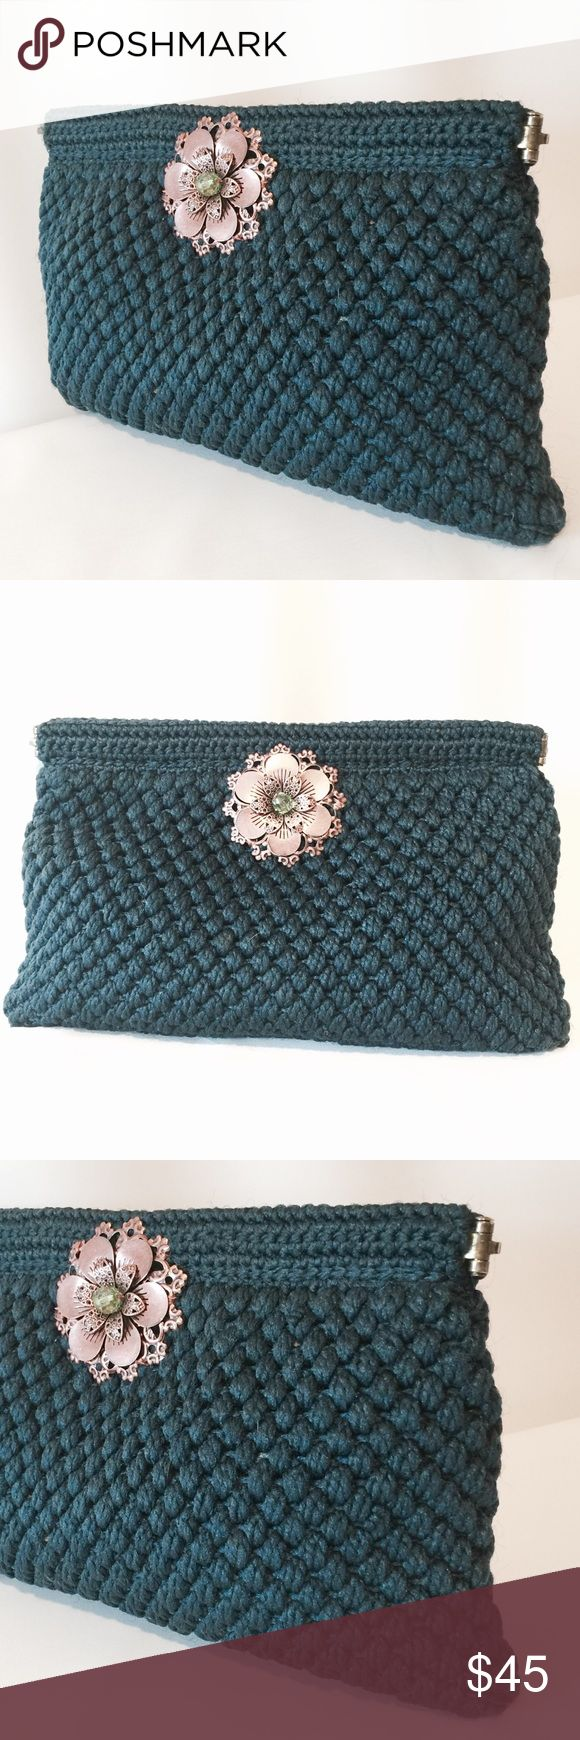 "Handmade Teal Crochet Clutch With Copper Flower One of a kind treasure! This amazing clutch is handmade, fully lined, has metallic copper flowers on both sides with beaded center. Featuring magnetic snap closure.   7"" H X 11"" W   100% poly  Spot clean only Bags Clutches & Wristlets"